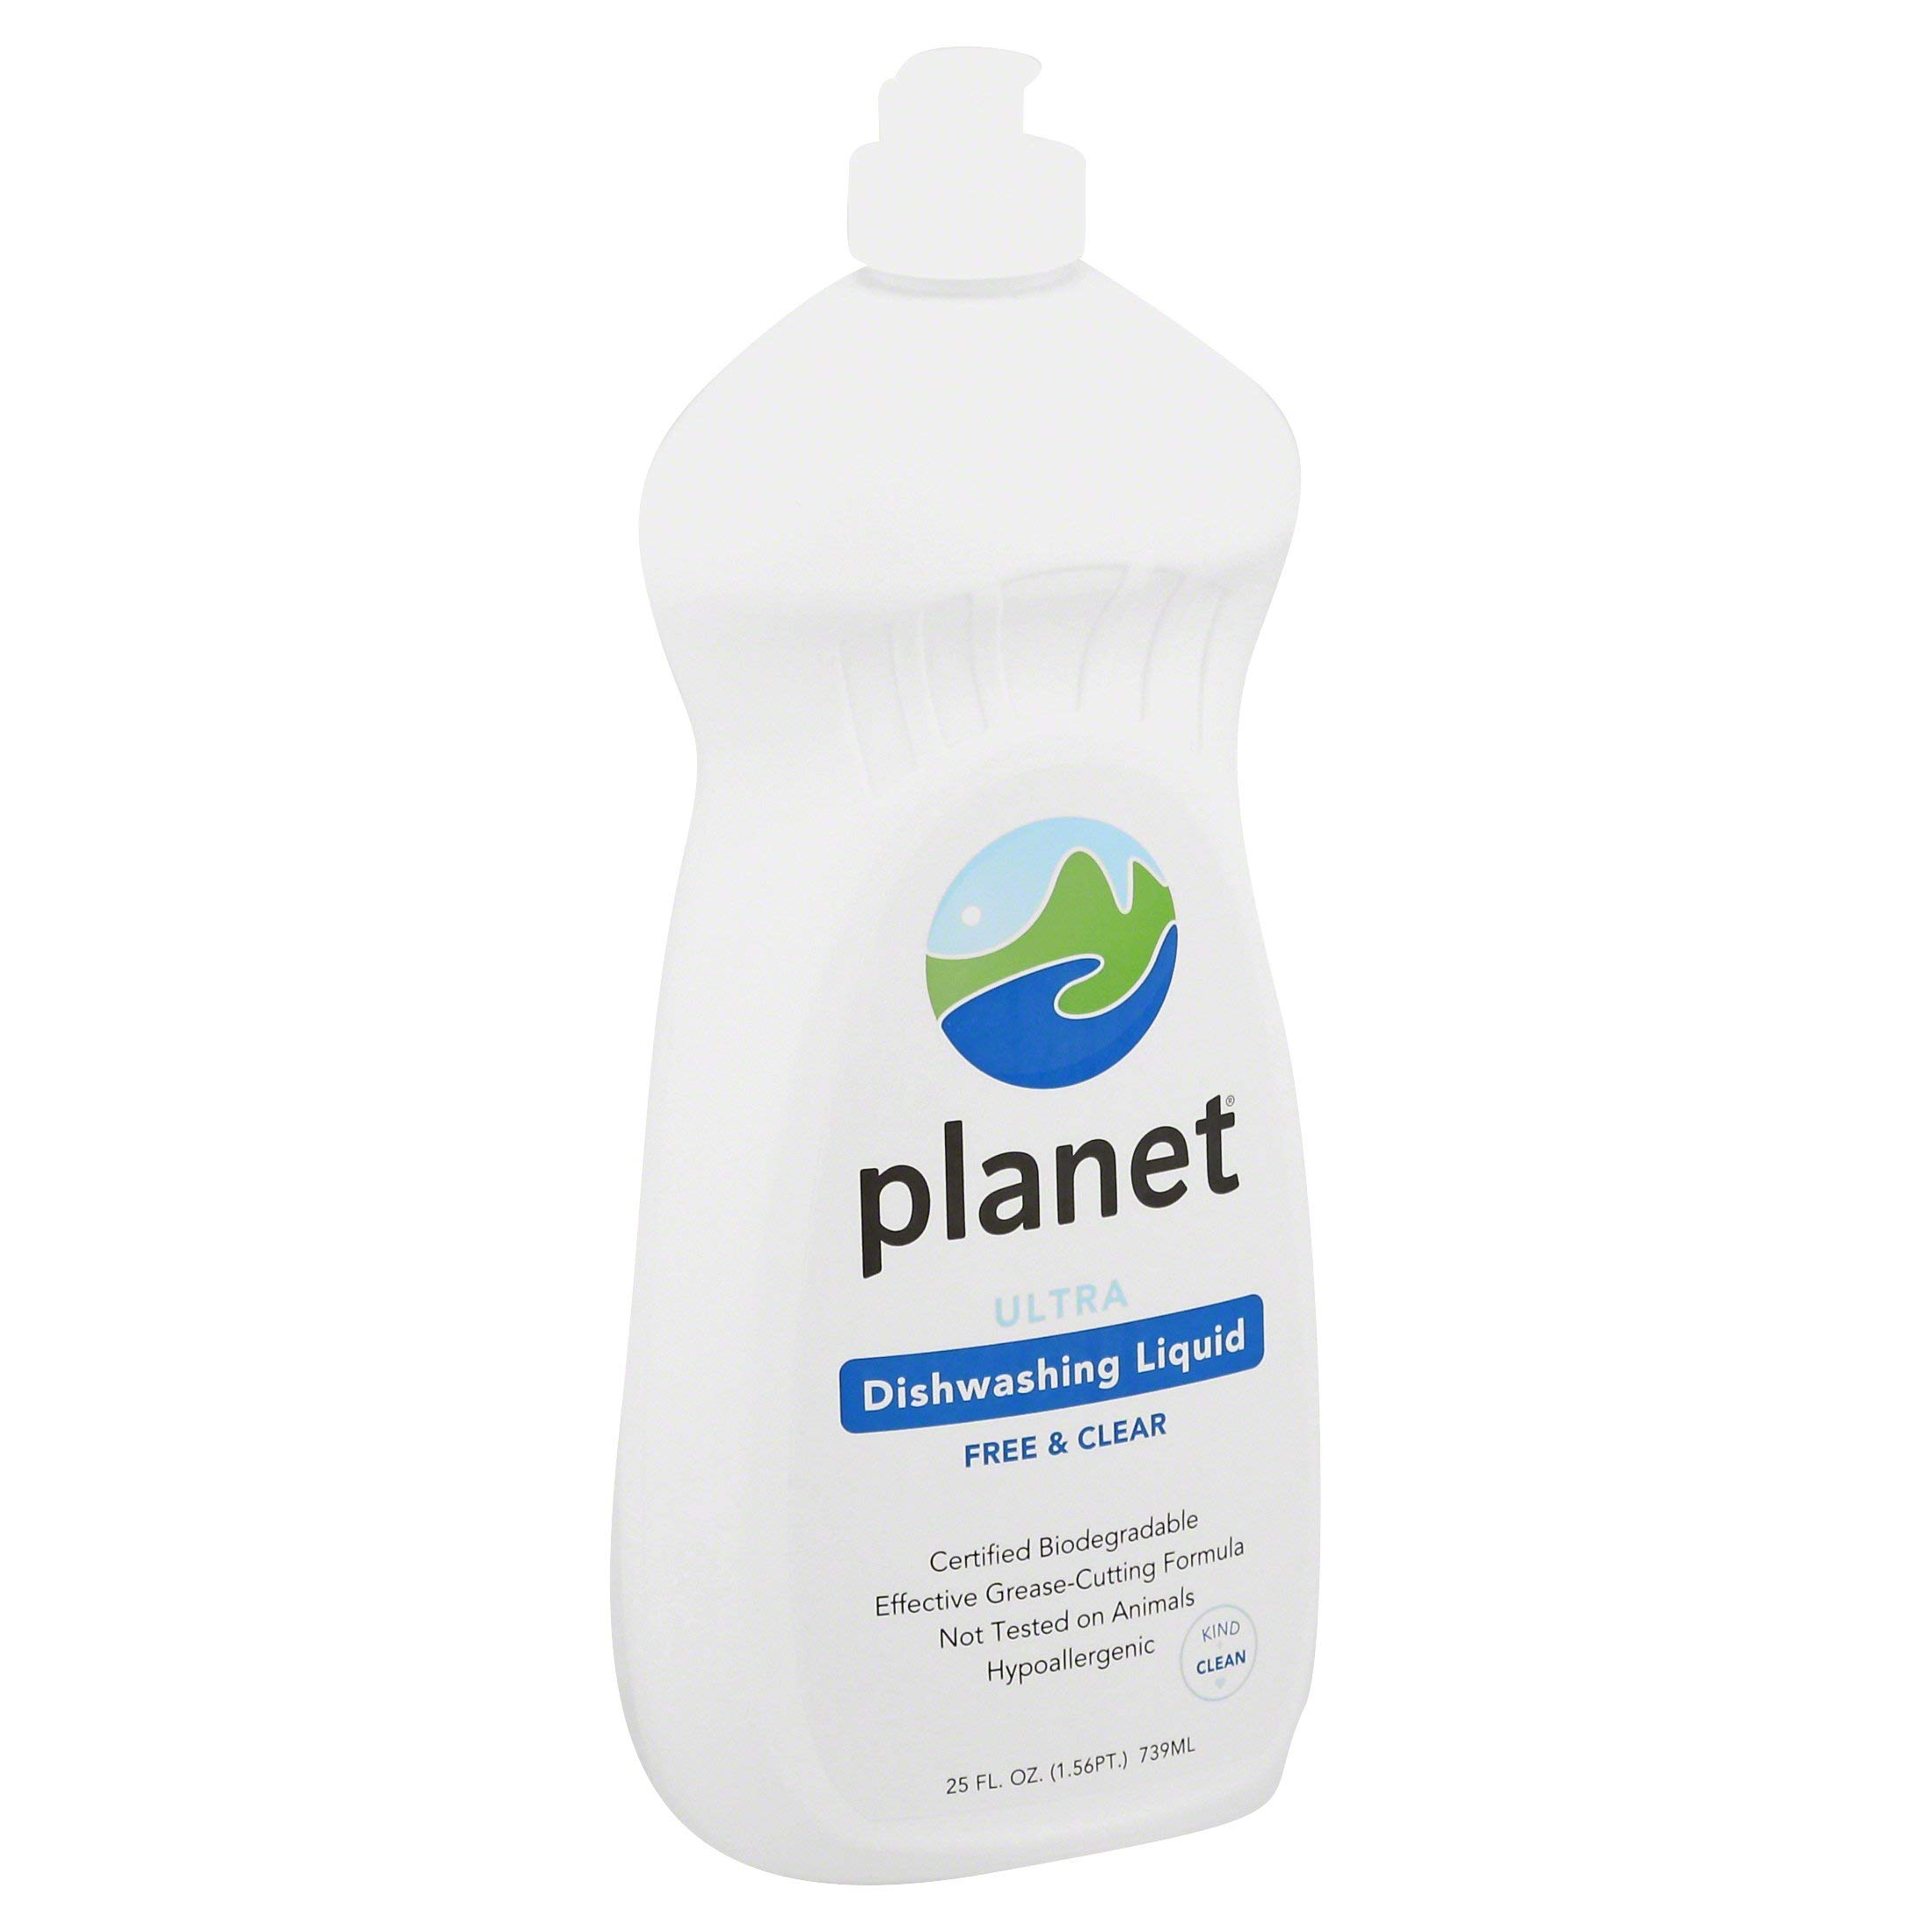 Planet Ultra Dishwashing Liquid, 25 Fluid Ounce Bottles (Pack of 12) by Planet (Image #3)